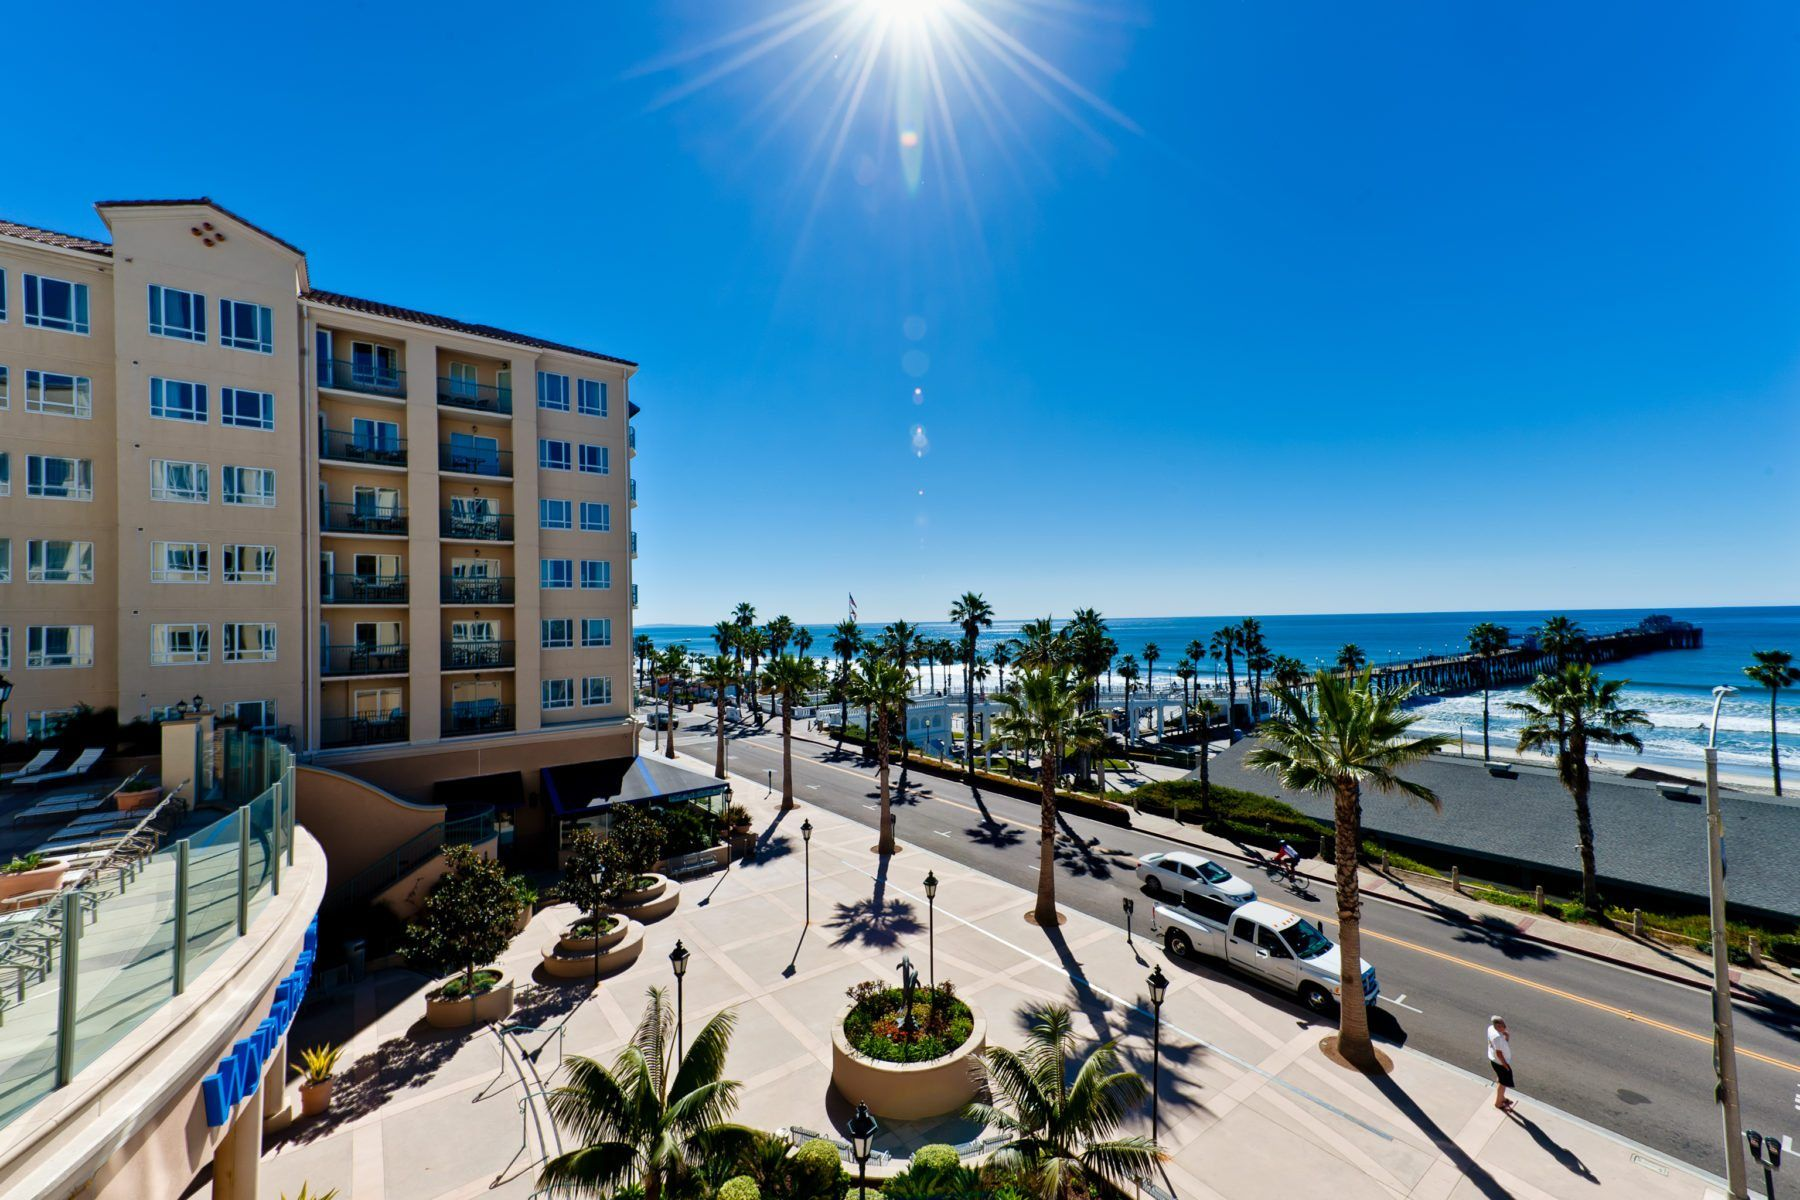 25 OFF with Wyndham Oceanside Pier Resort this Fall! Book